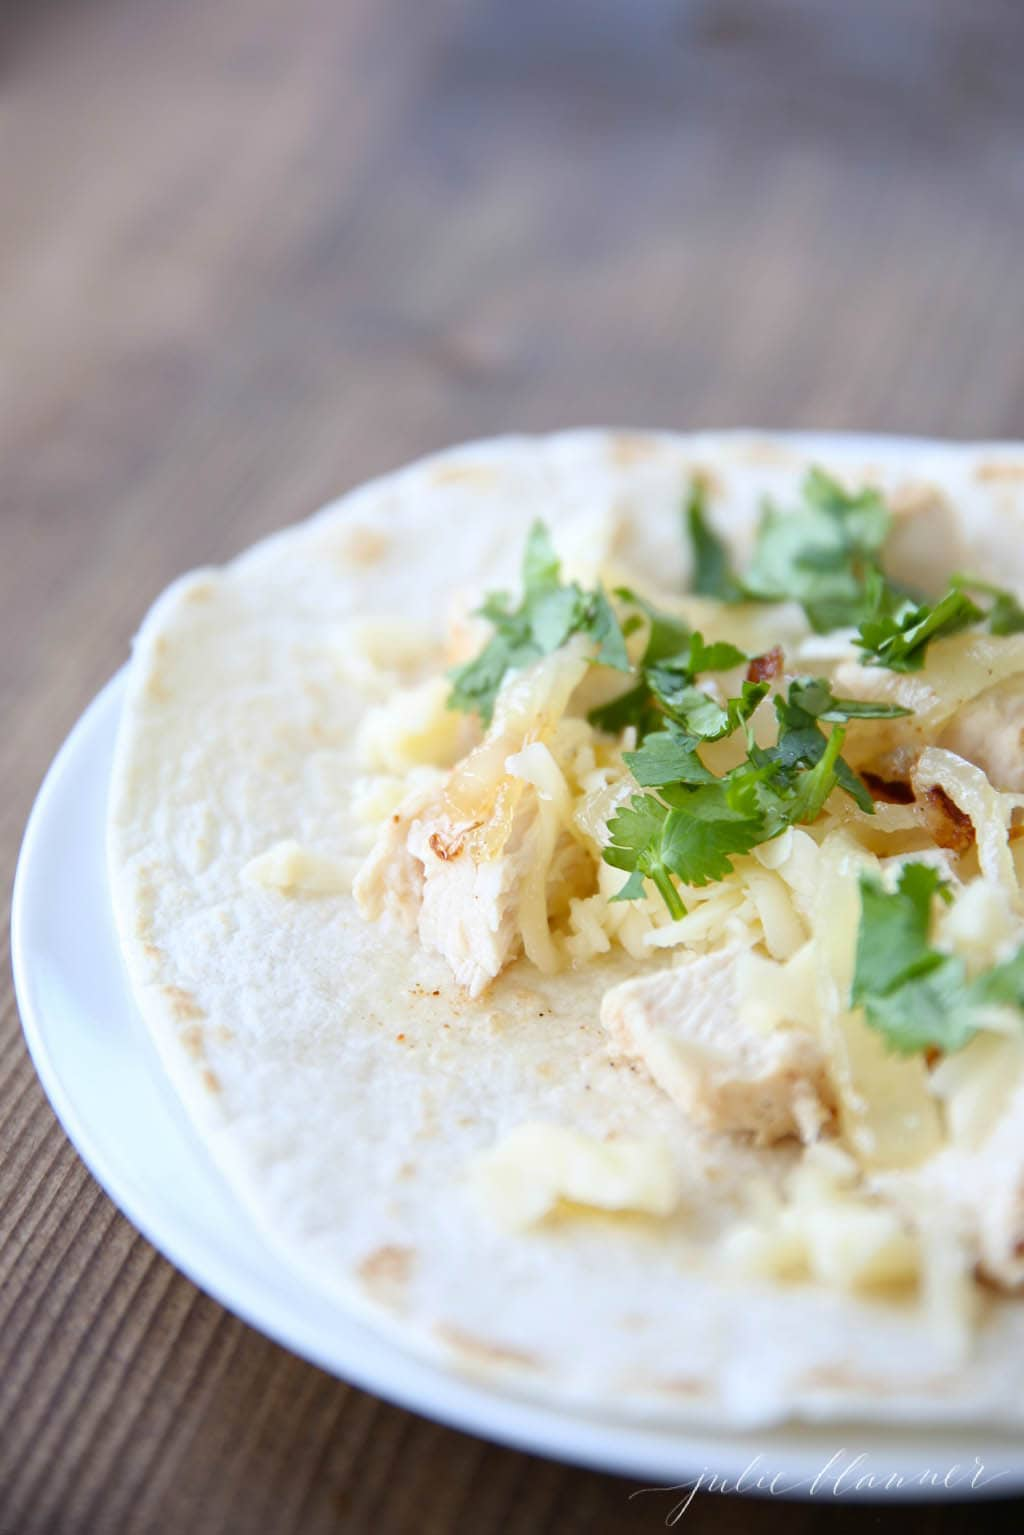 Unbelievably good chicken taco recipe!